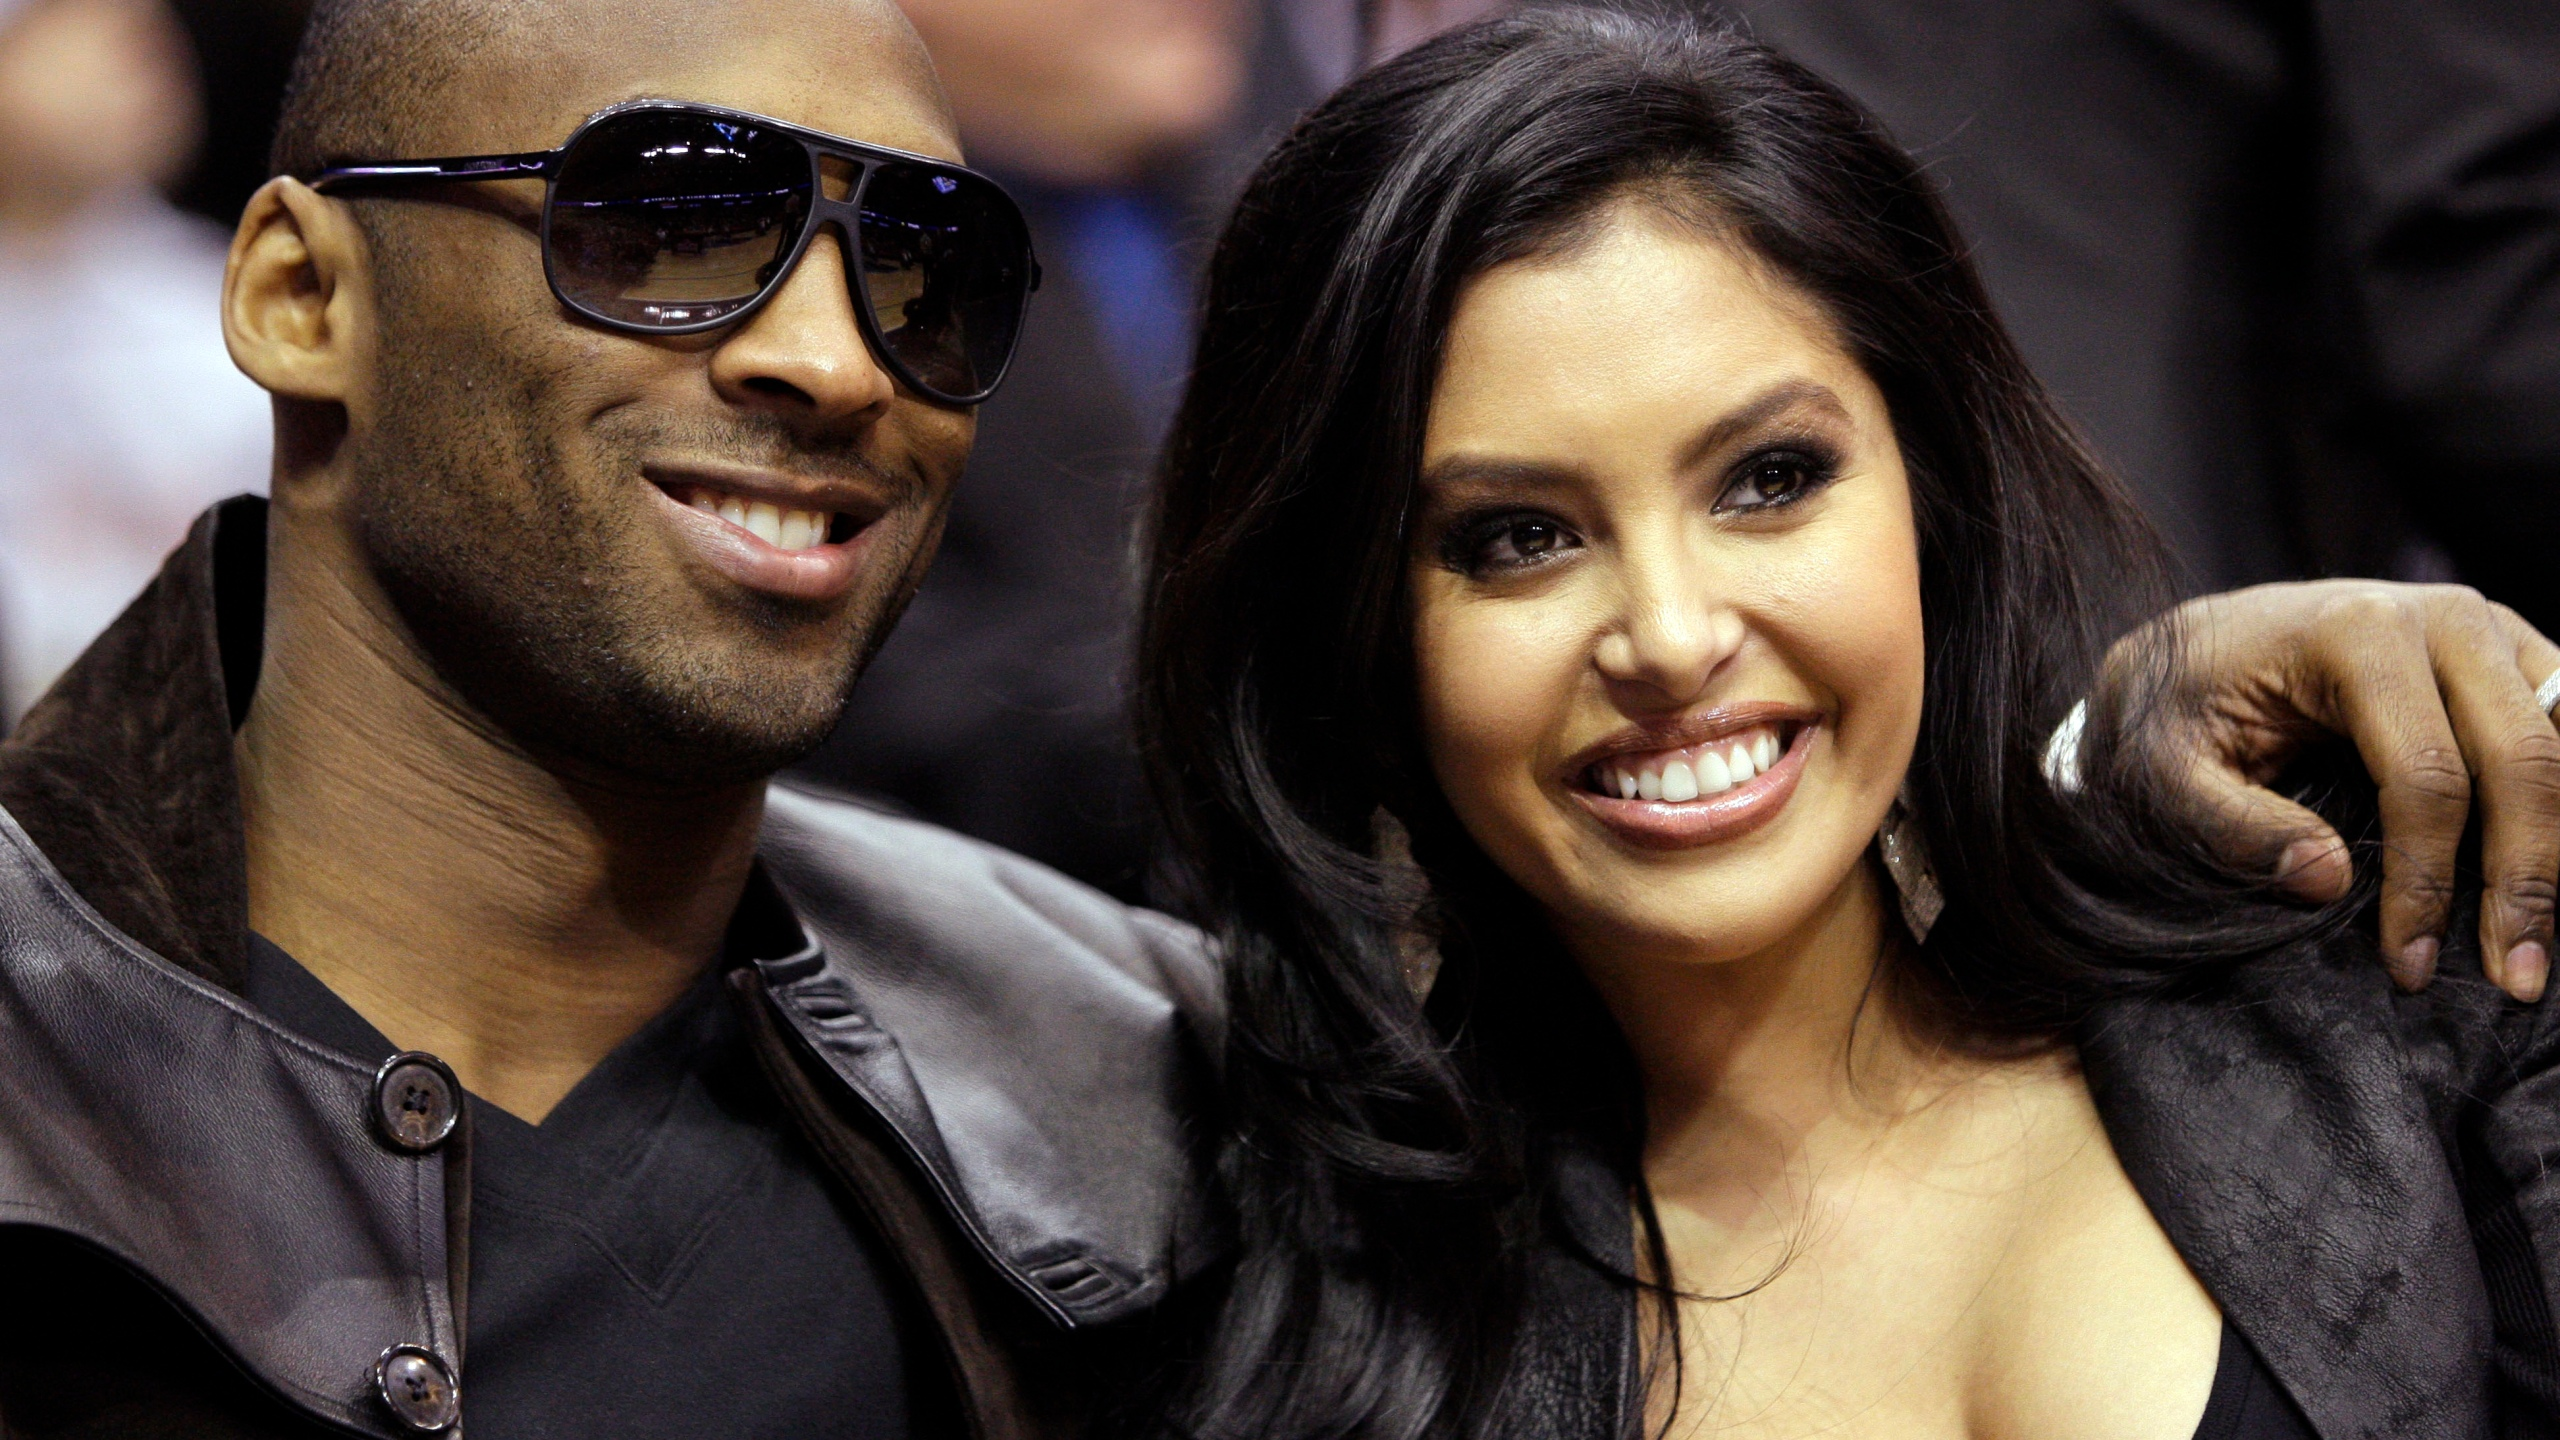 In this Feb. 13, 2010, file photo, Los Angeles Lakers guard Kobe Bryant and his wife, Vanessa, attend the skills competition at the NBA basketball All-Star Saturday Night in Dallas. (AP Photo/LM Otero, File)